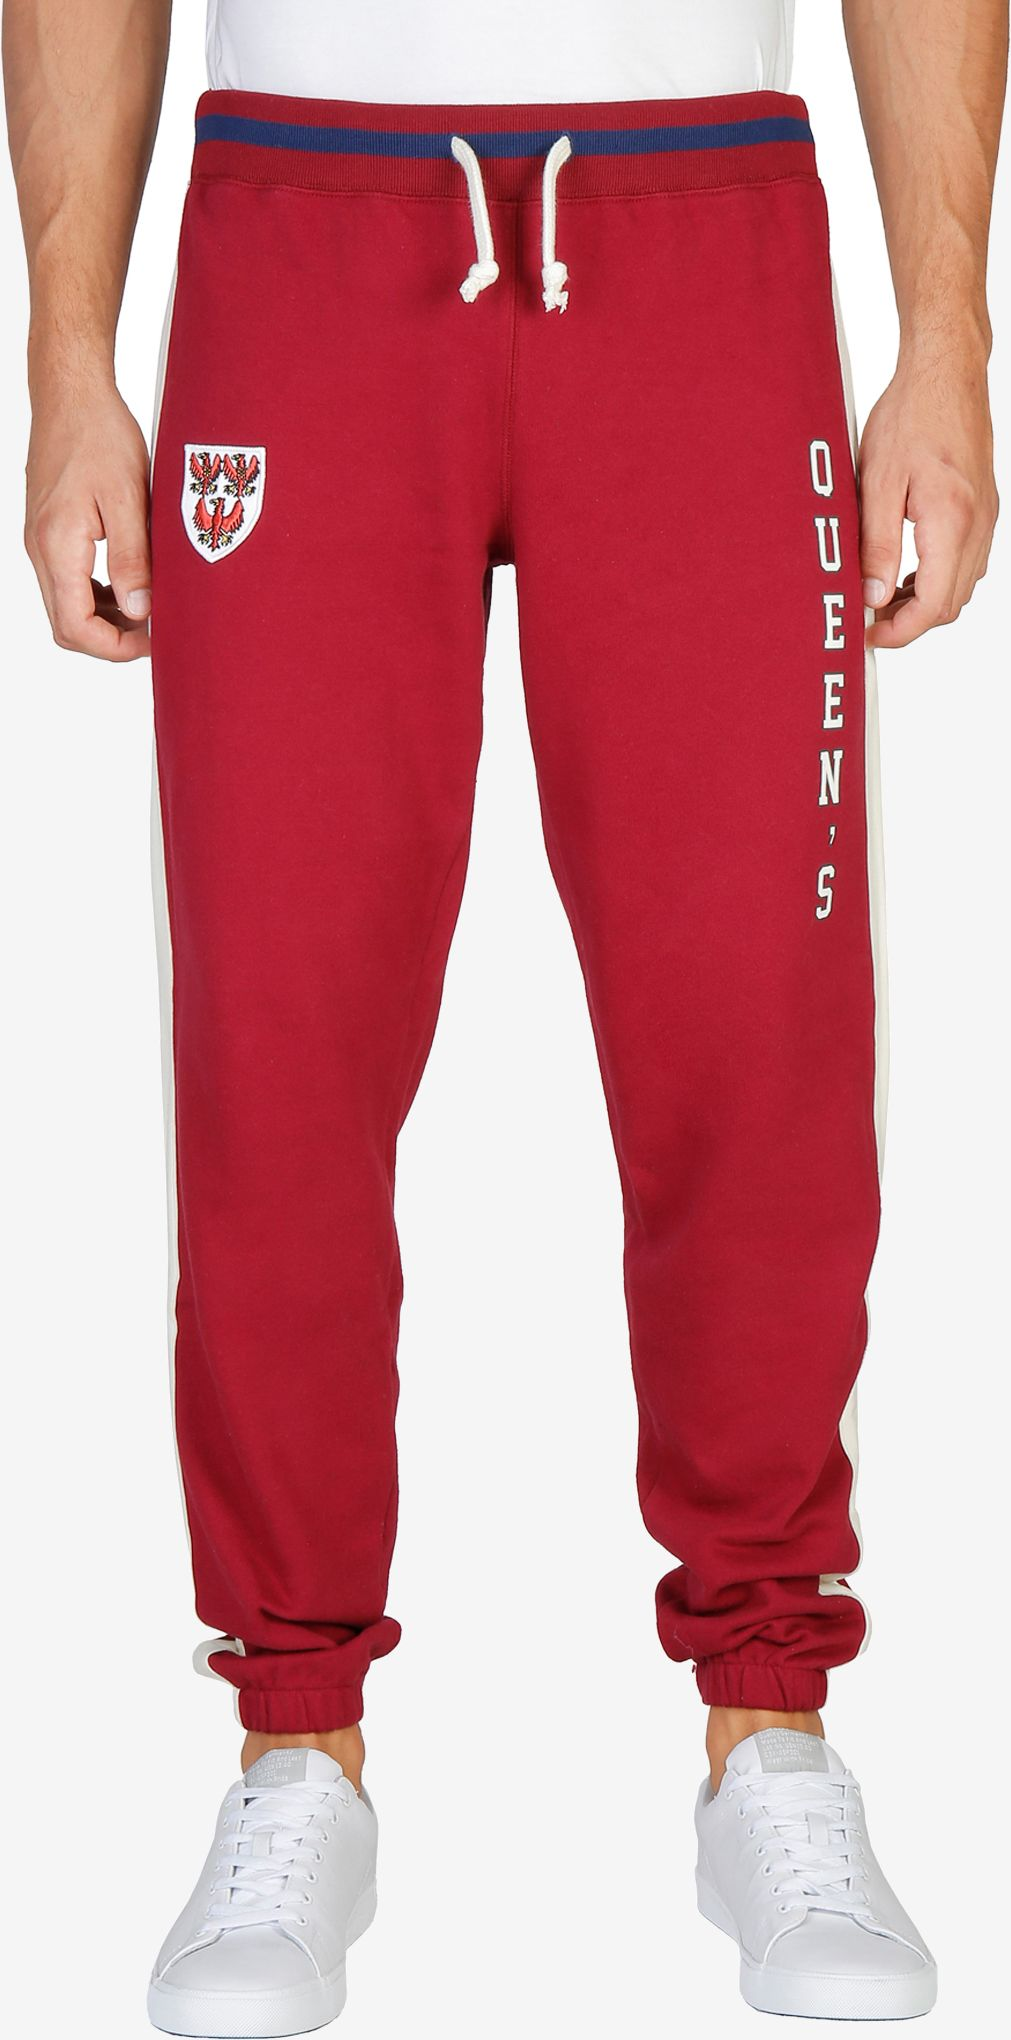 Oxford University QUEENS-PANT-RED XL